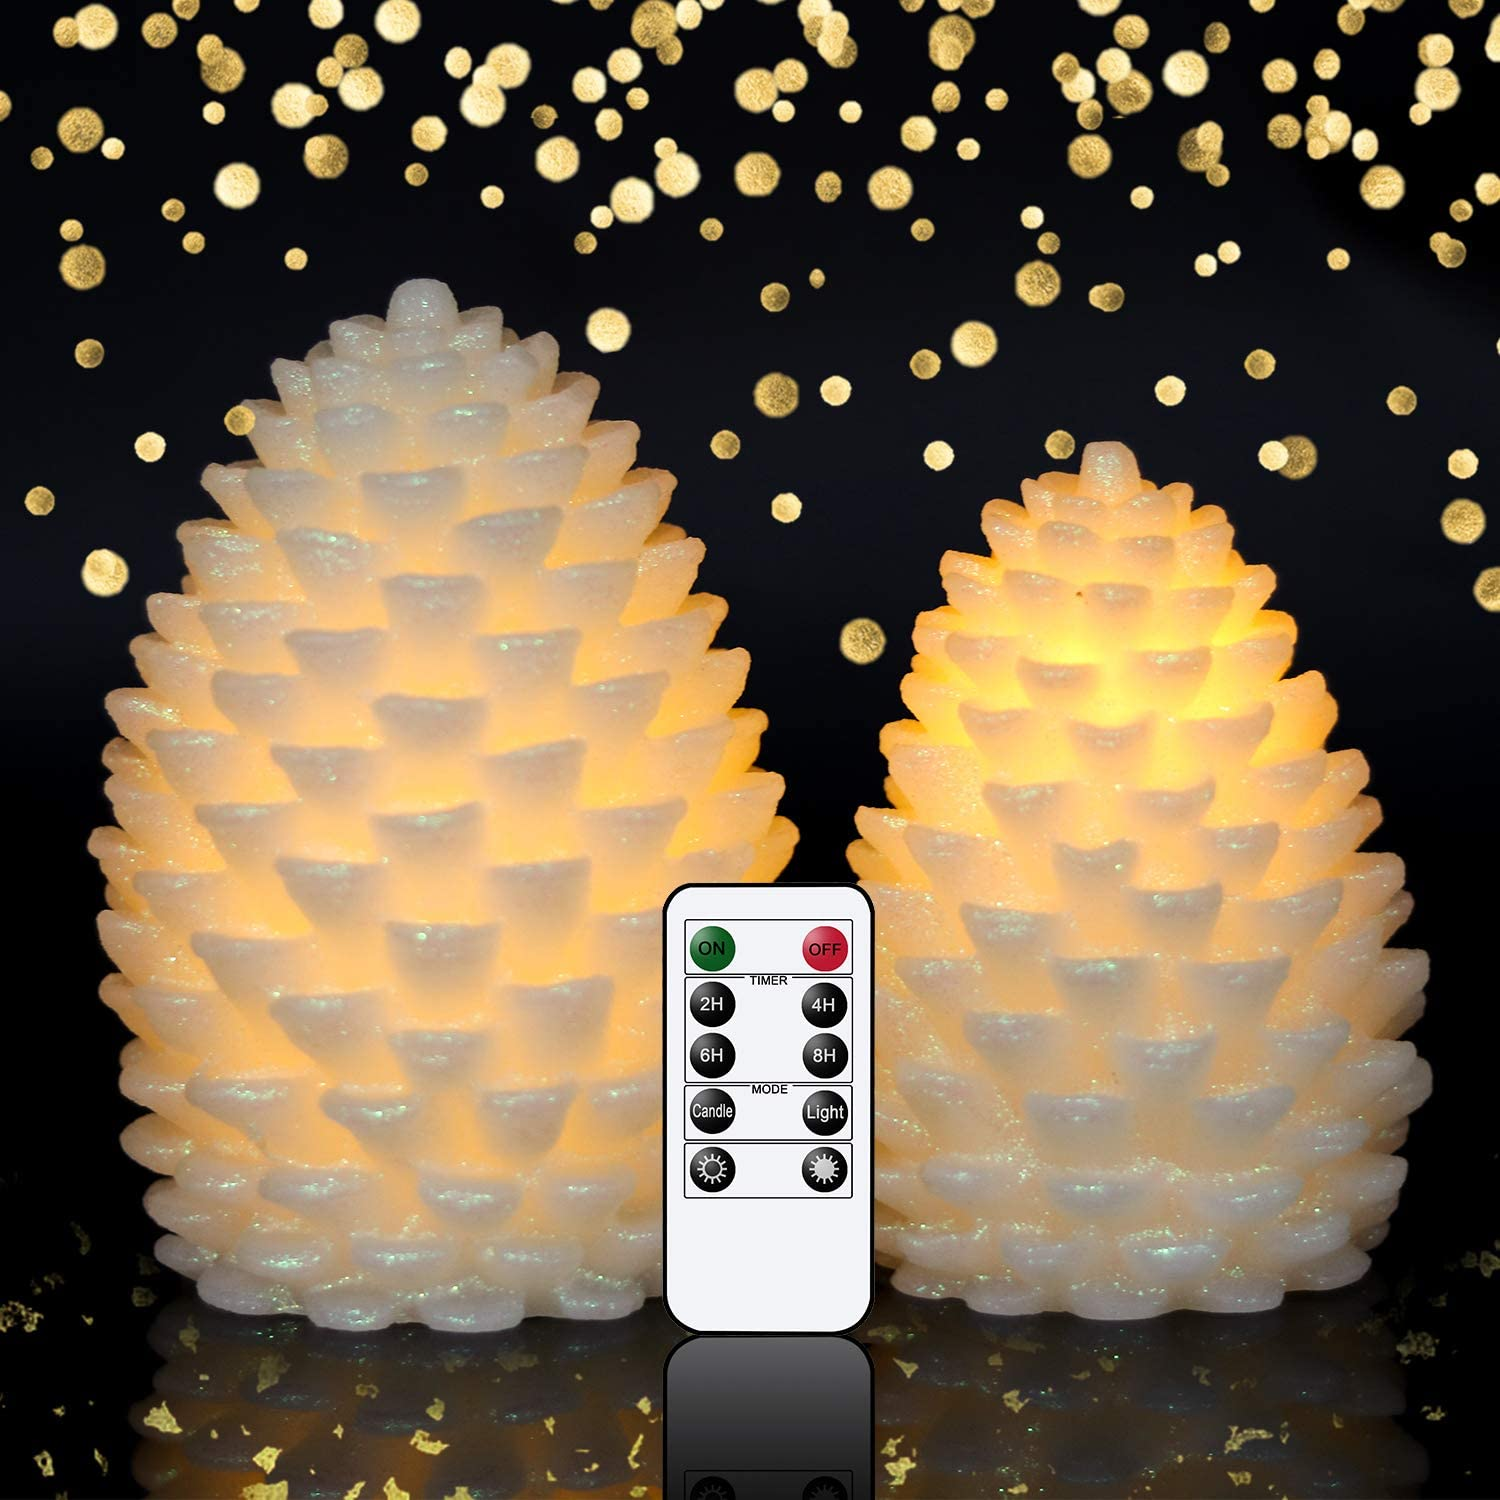 """Wondise Christmas Pine Cone Shaped Flameless Flickering Candles with Remote Timer, 2 Pack Battery Operated Real Wax LED Candles for Christmas Home Decoration Gift(Ivory, 4"""" x 6"""", 3.5"""" x 5"""")"""